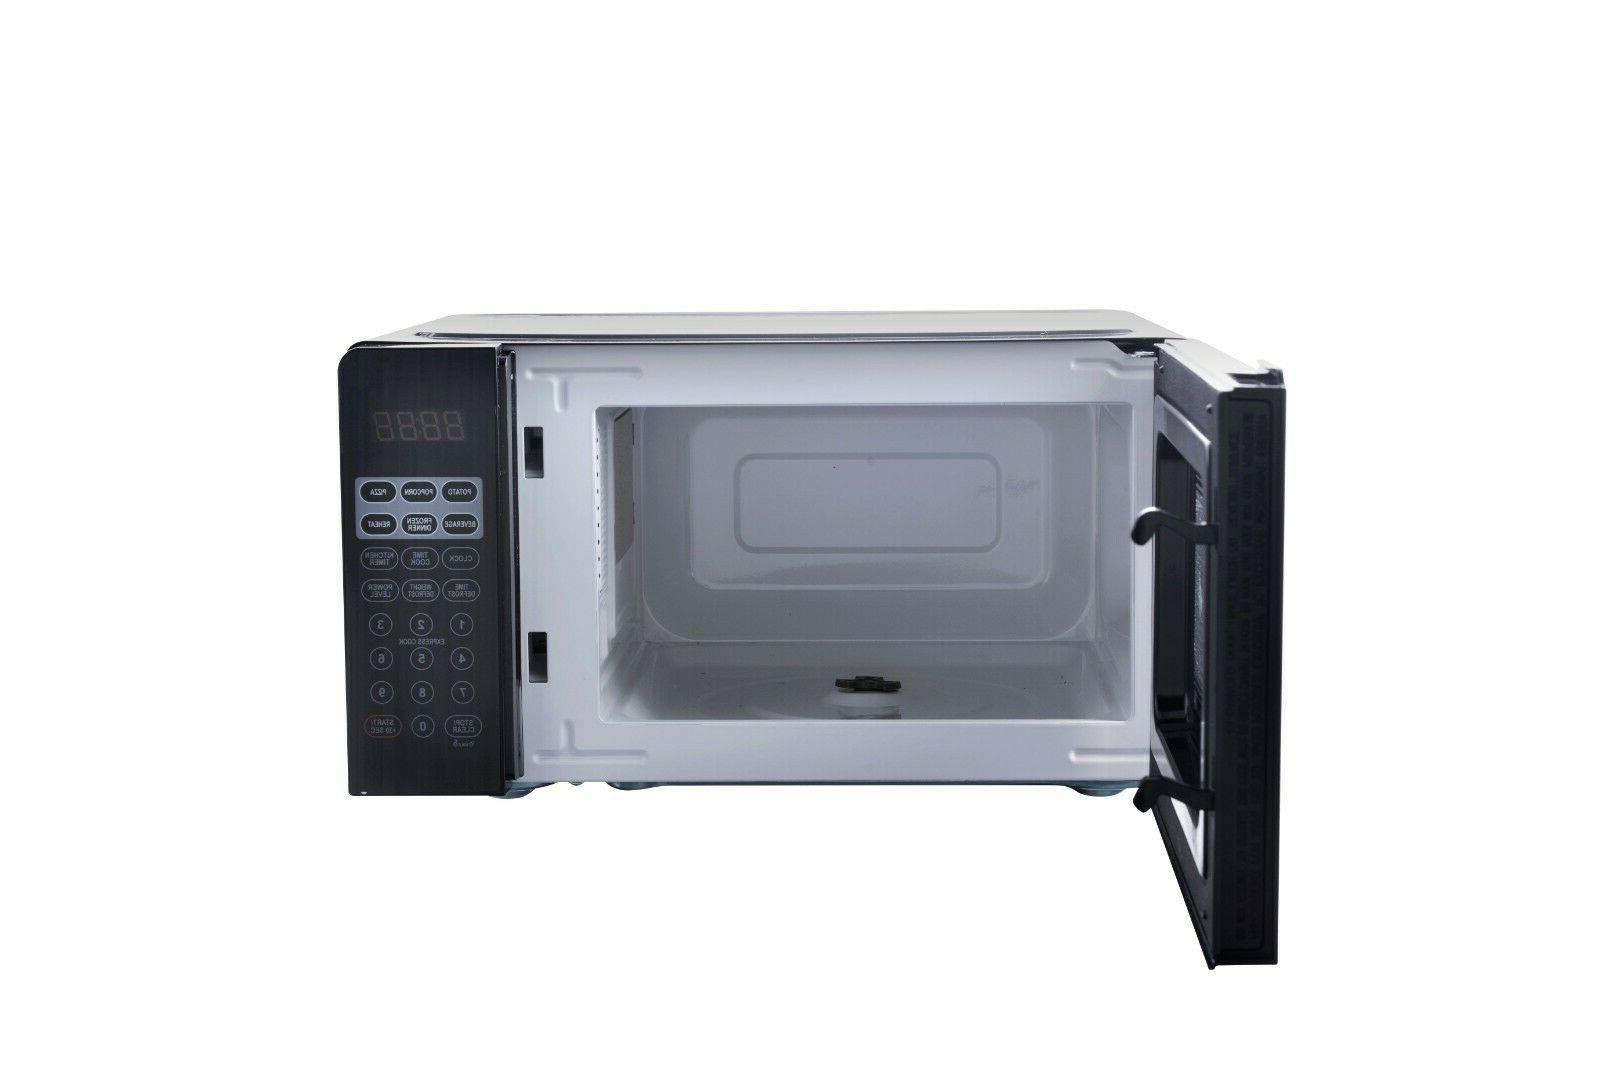 Countertop Oven Kitchen Home Office Dorm LED 700W